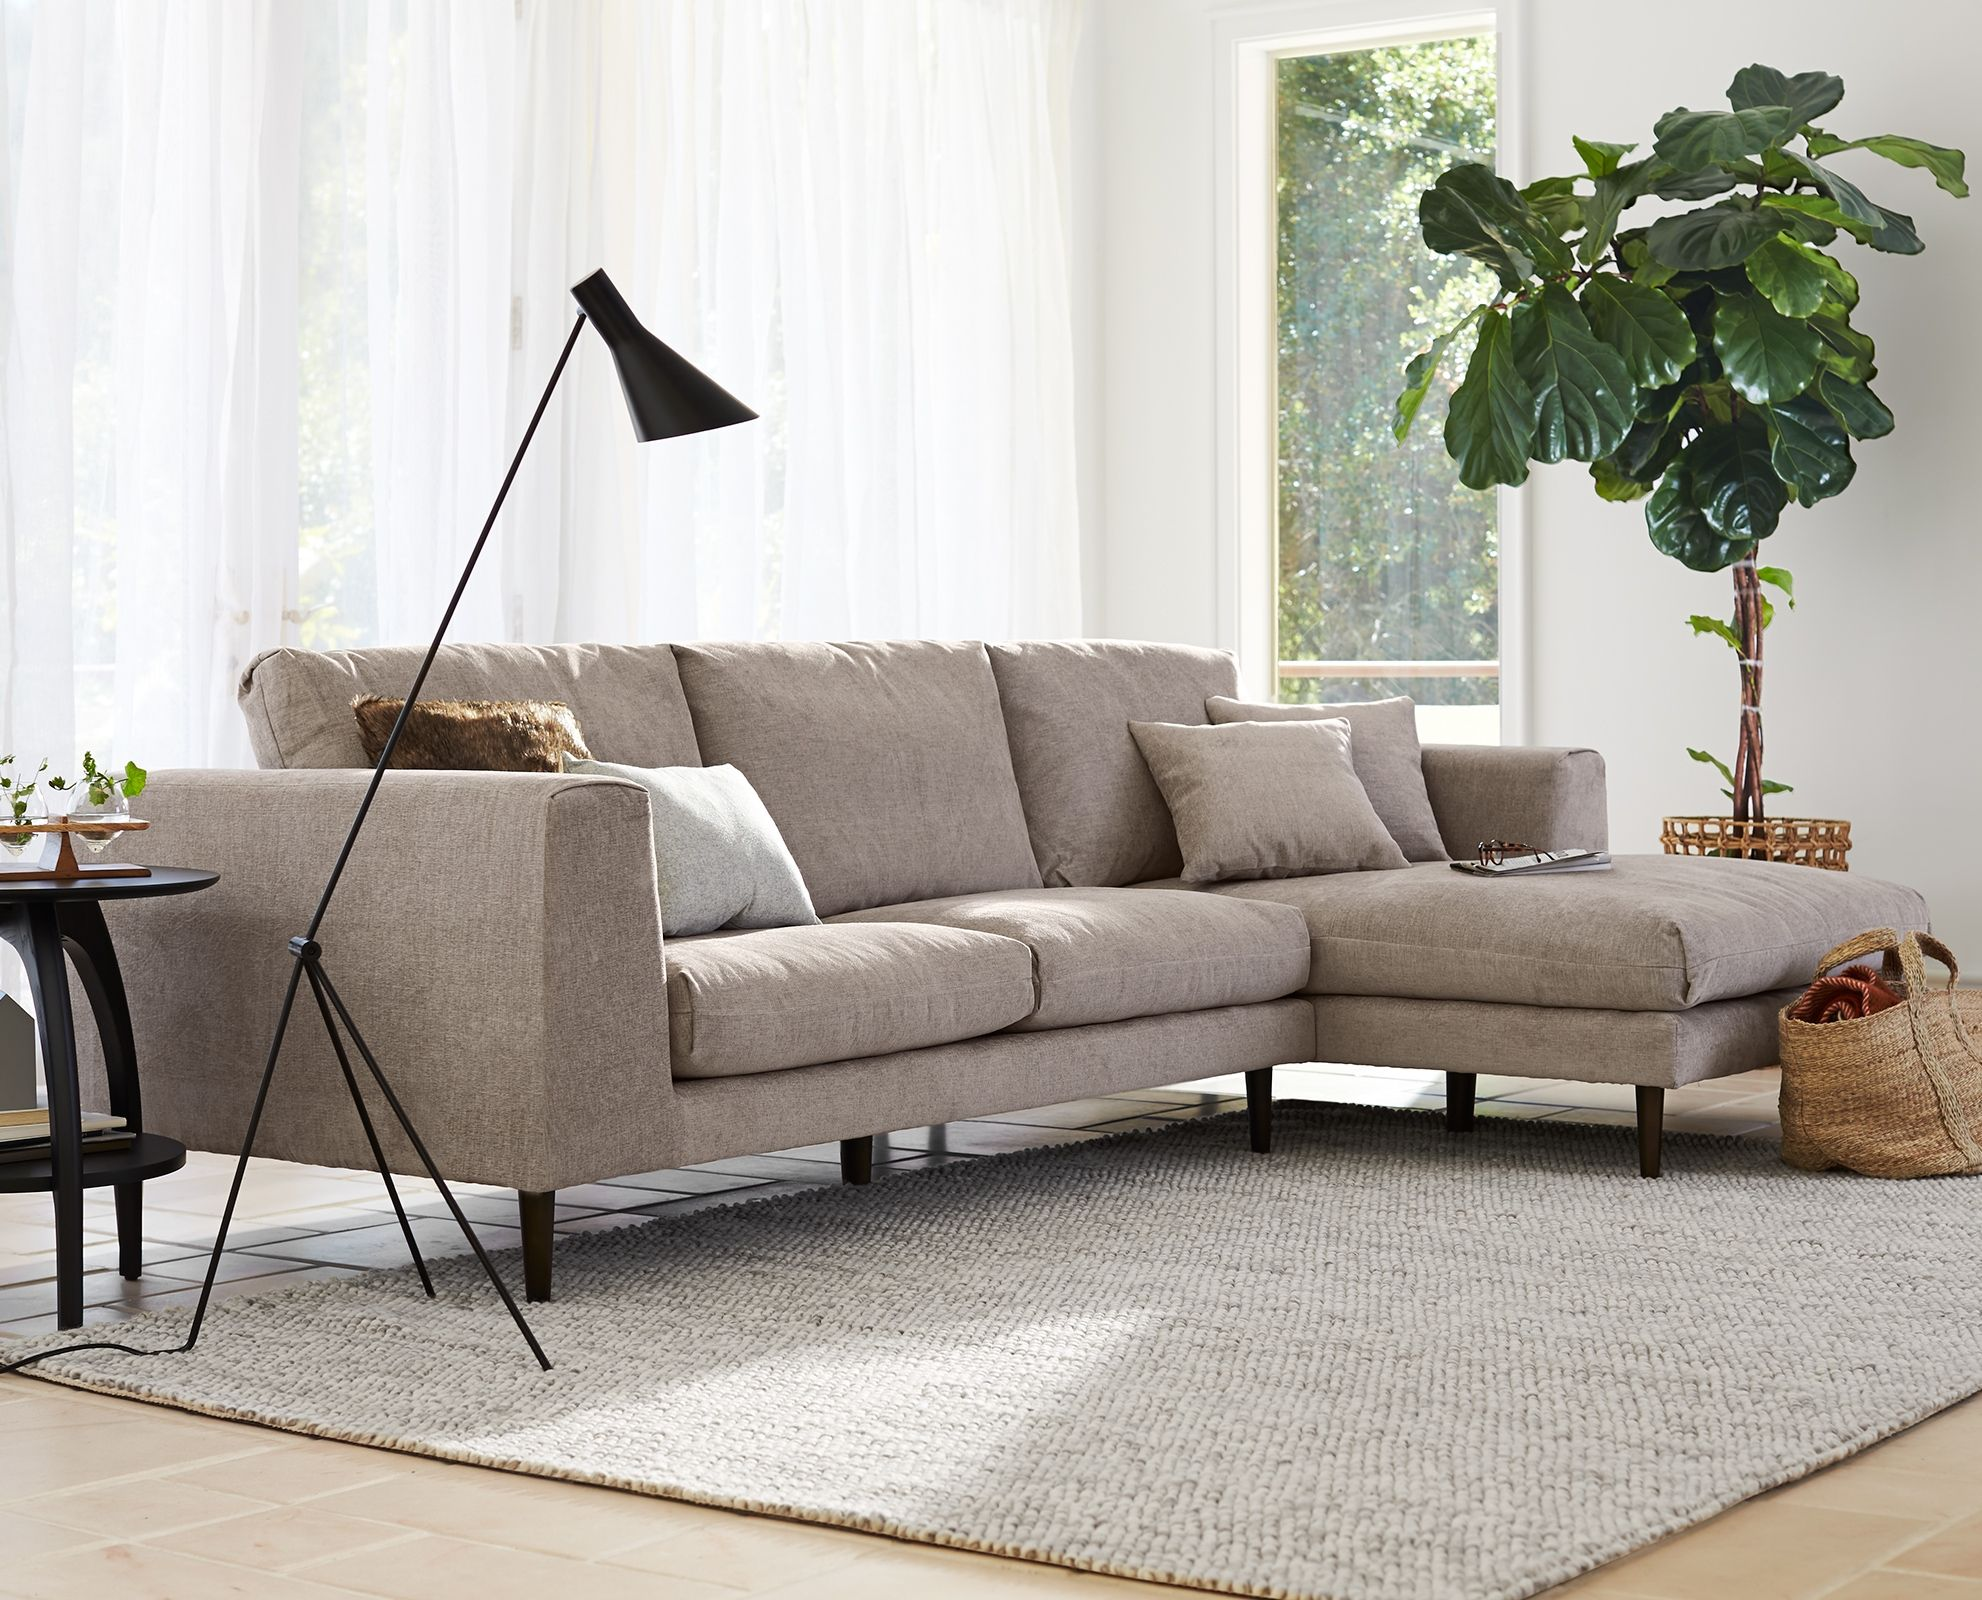 Living Room Design With Sectional Sofa Fair Scandinavian Design Sectional Sofas  Httpml2R  Pinterest Inspiration